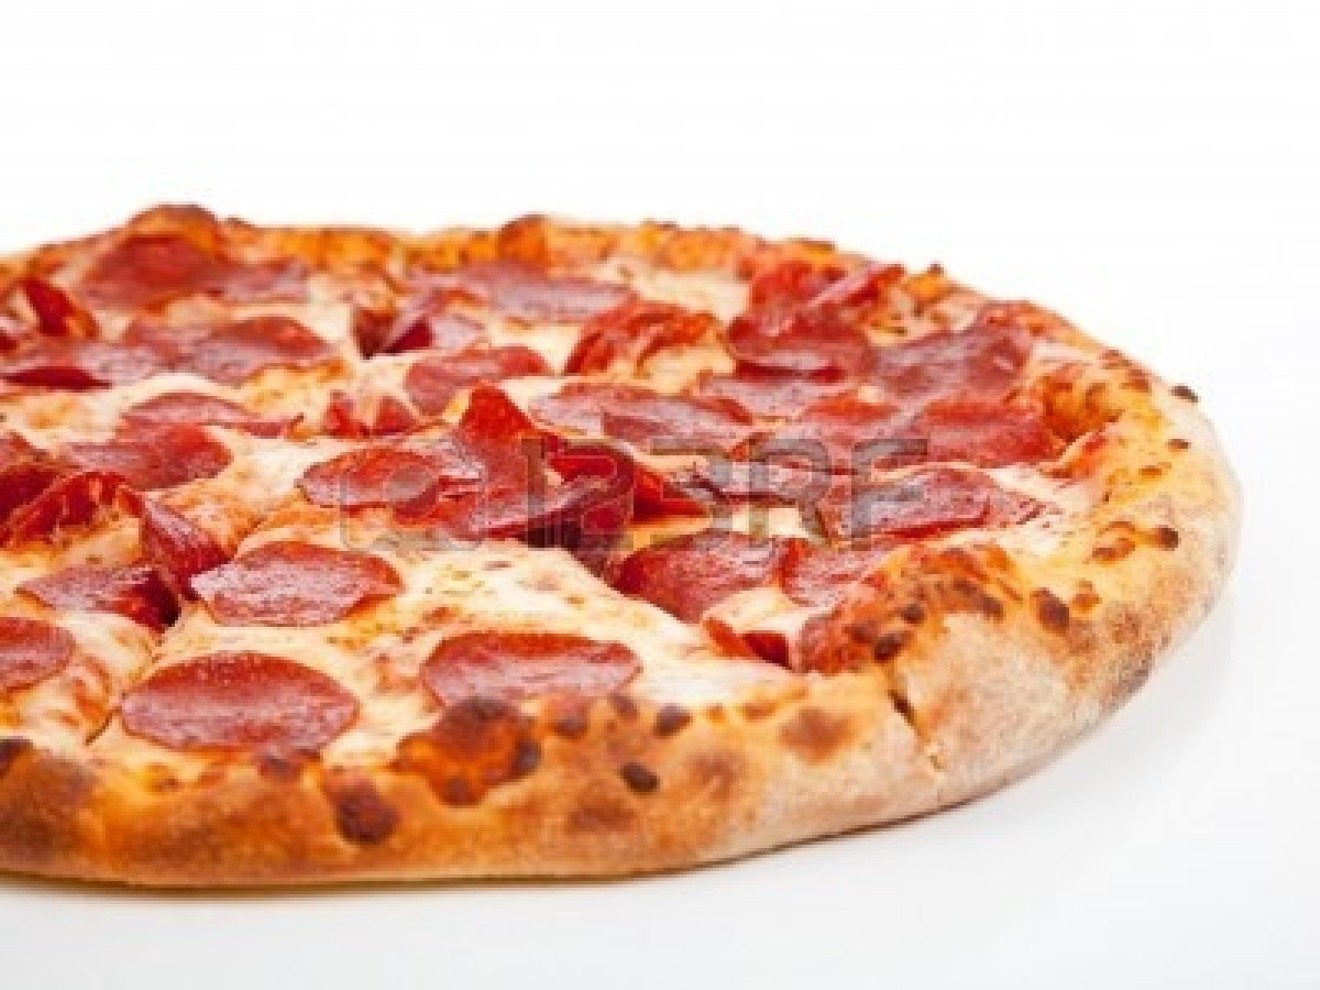 6756449-a-pepperoni-pizza-on-a-white-background.jpg